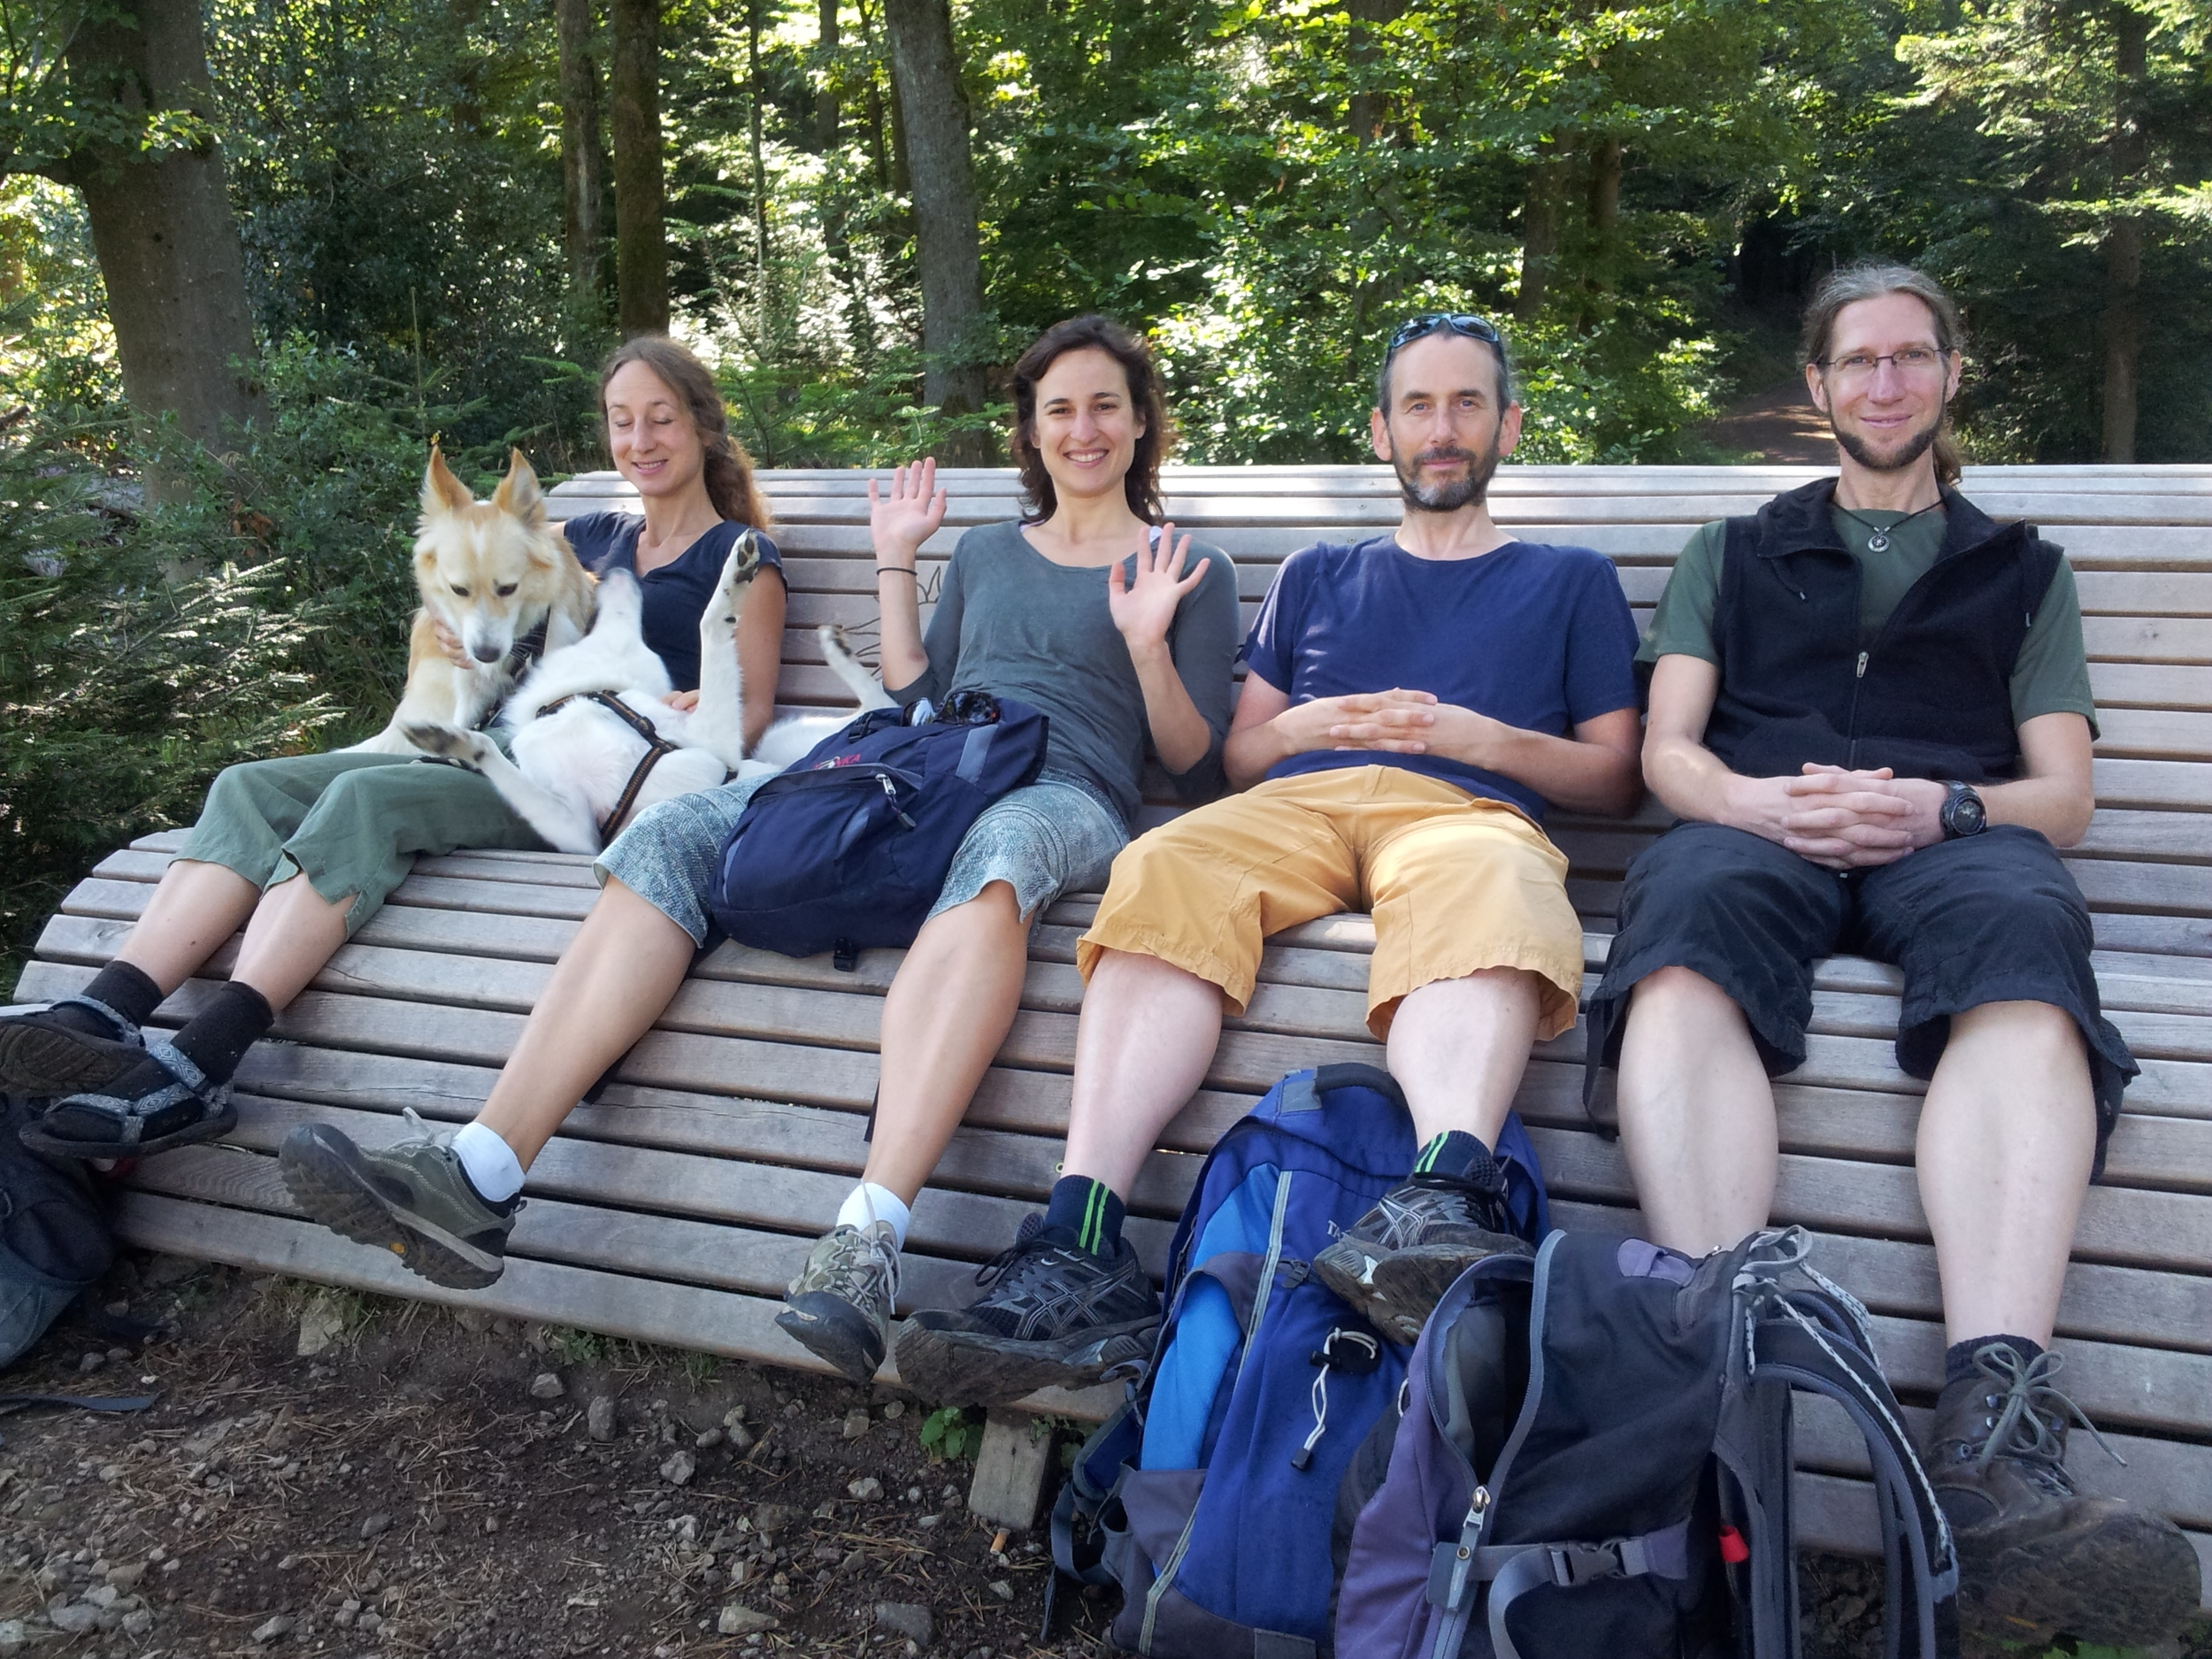 The vegan Freiburg walking crew took me for a hike up the highest peak, with two vegan dogs!